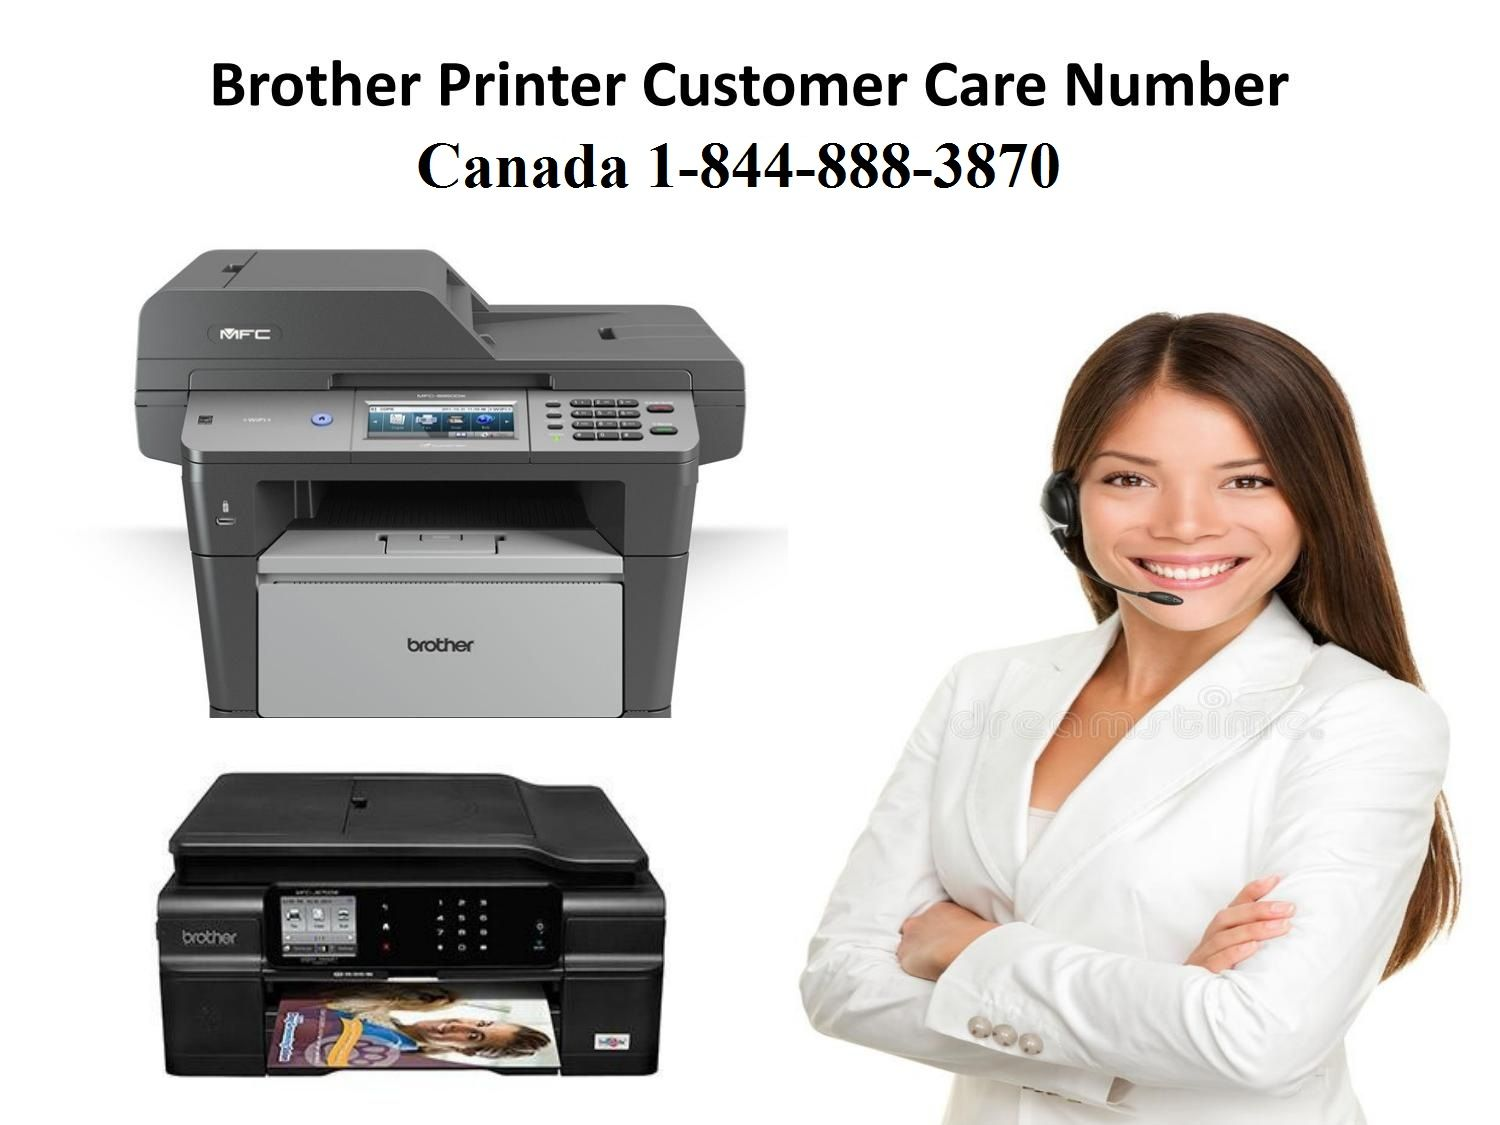 If you have a problem with your brother printer, you are